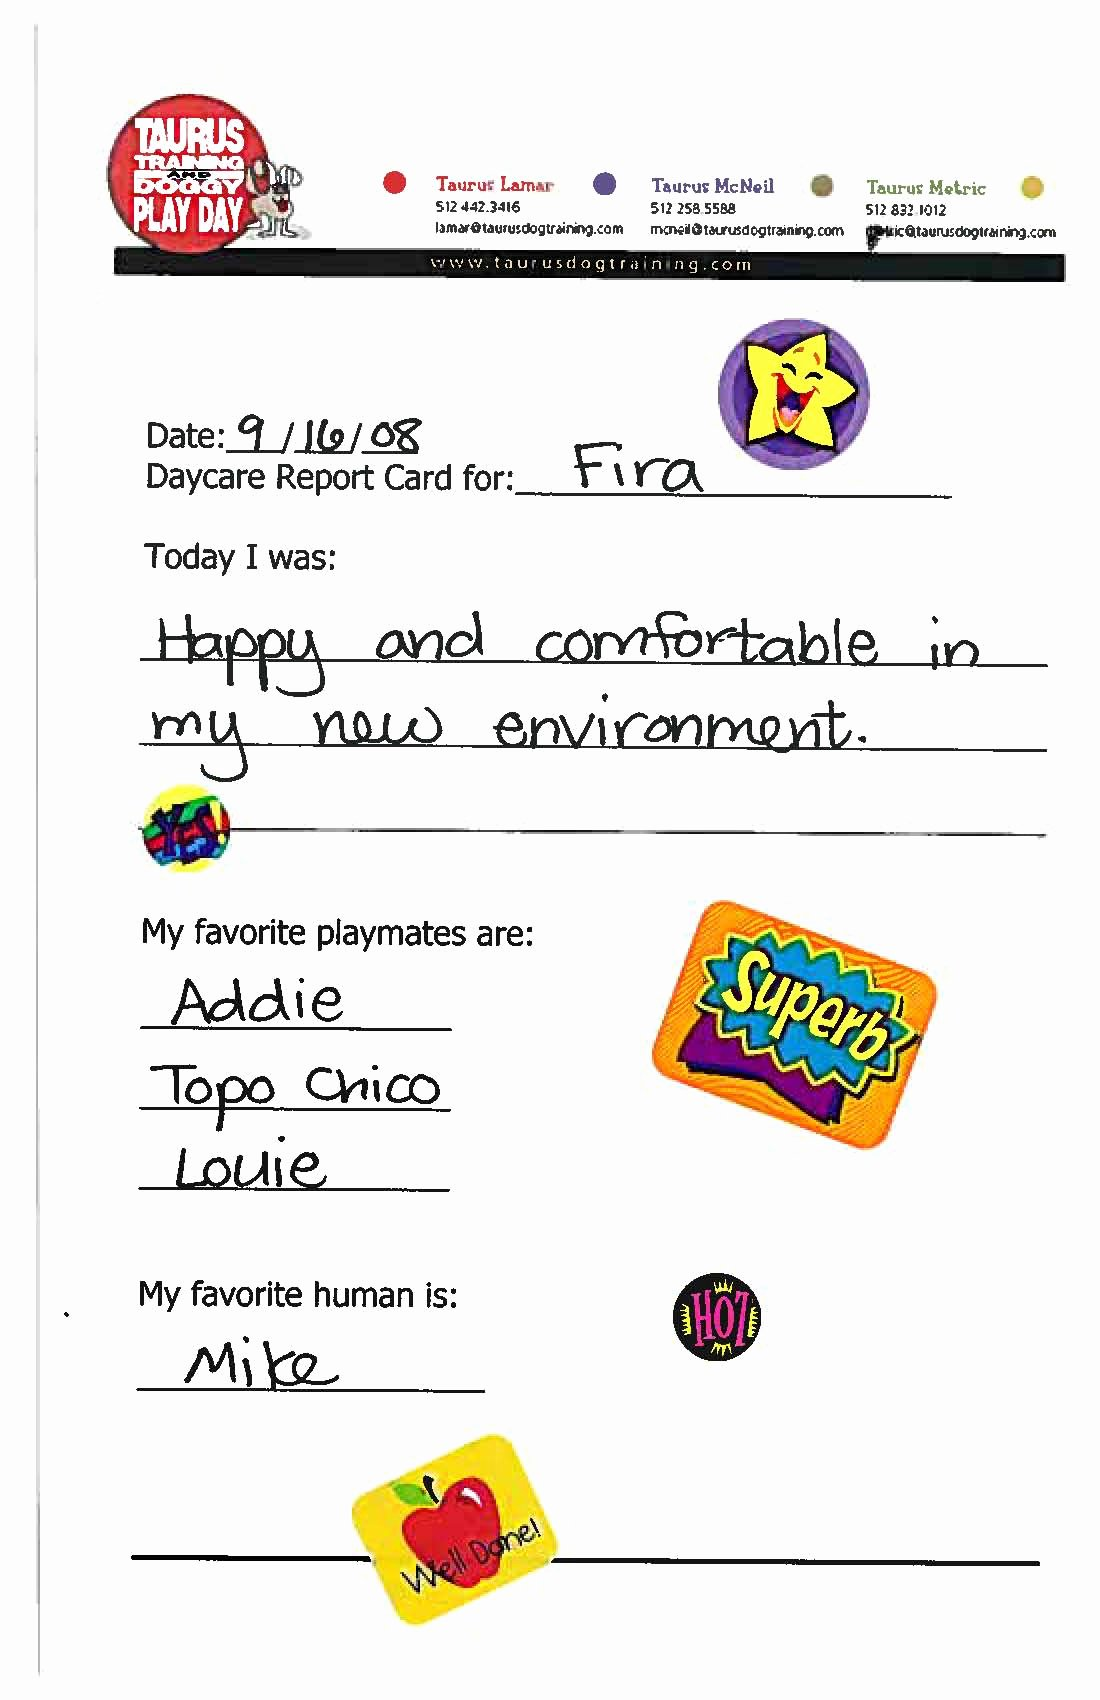 Dog Boarding Report Card Template Inspirational 21 Of Doggy Daycare Report Card Template